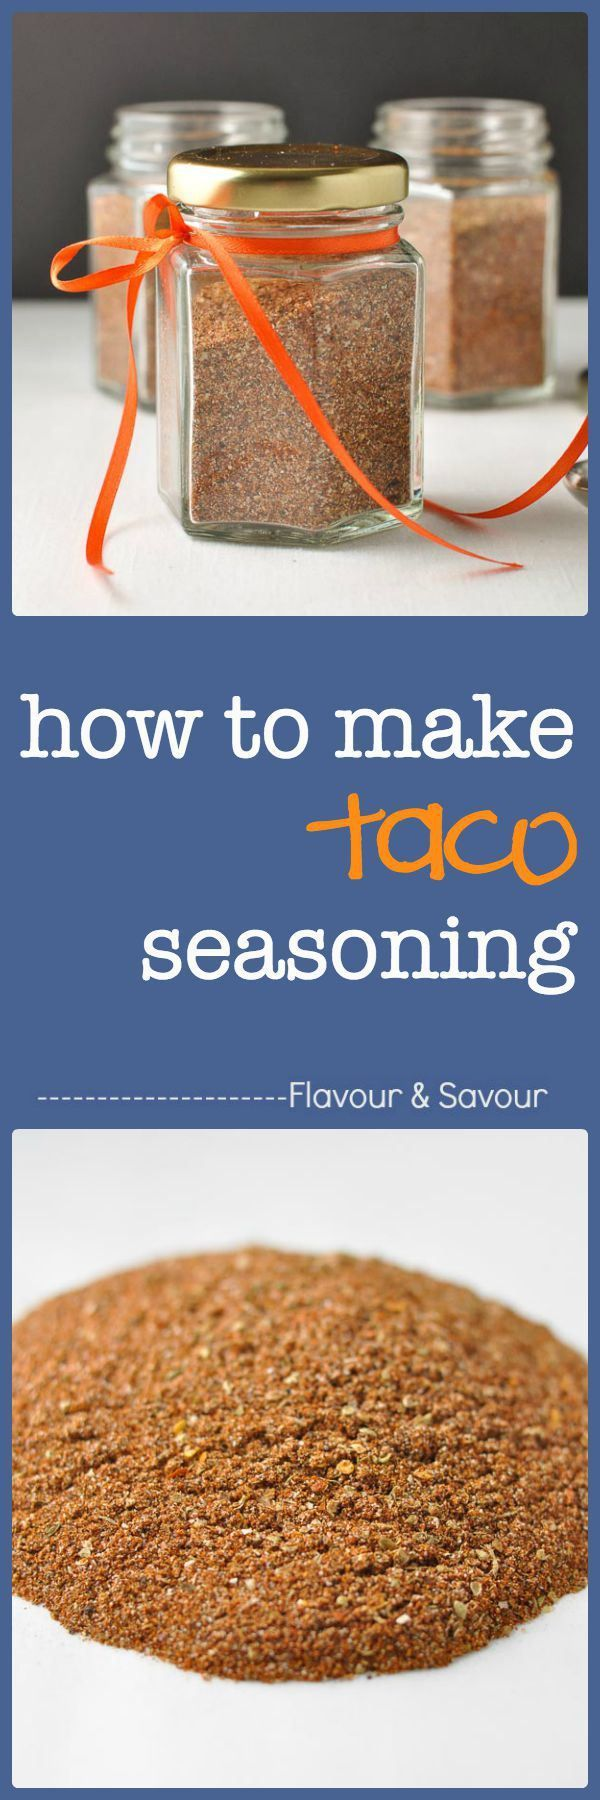 How to Make Taco Seasoning Mix. Takes less than 5 minutes! Avoid the additives. I'll never go back to buying packaged seasoning again. This is so easy.